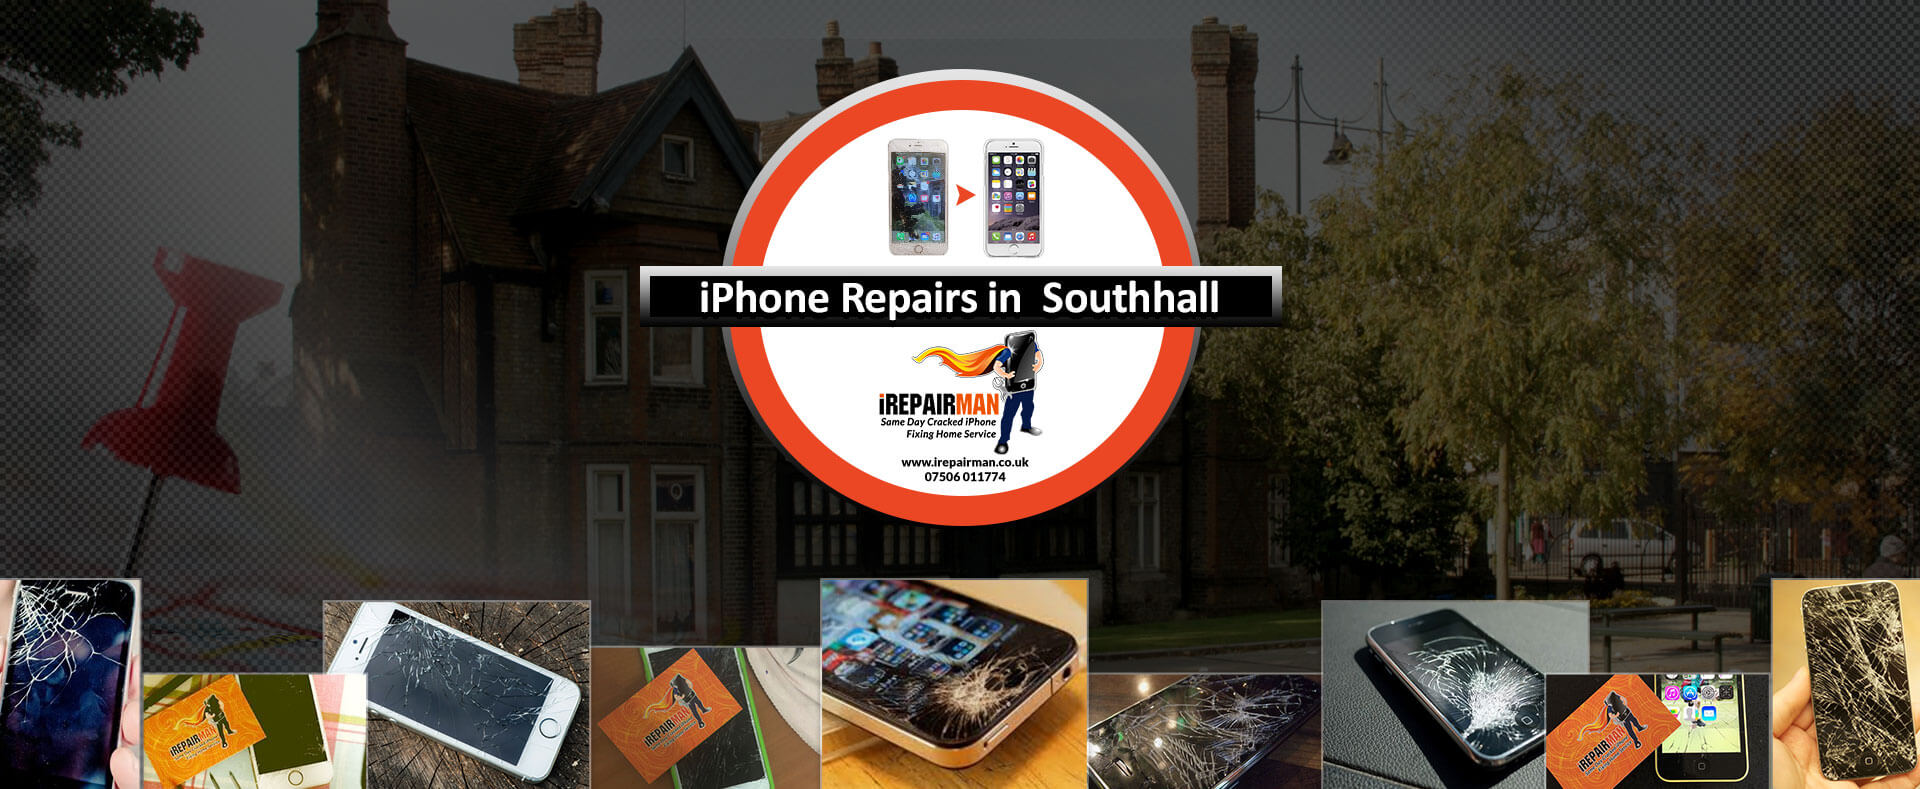 iPhone Repairs in Southhall